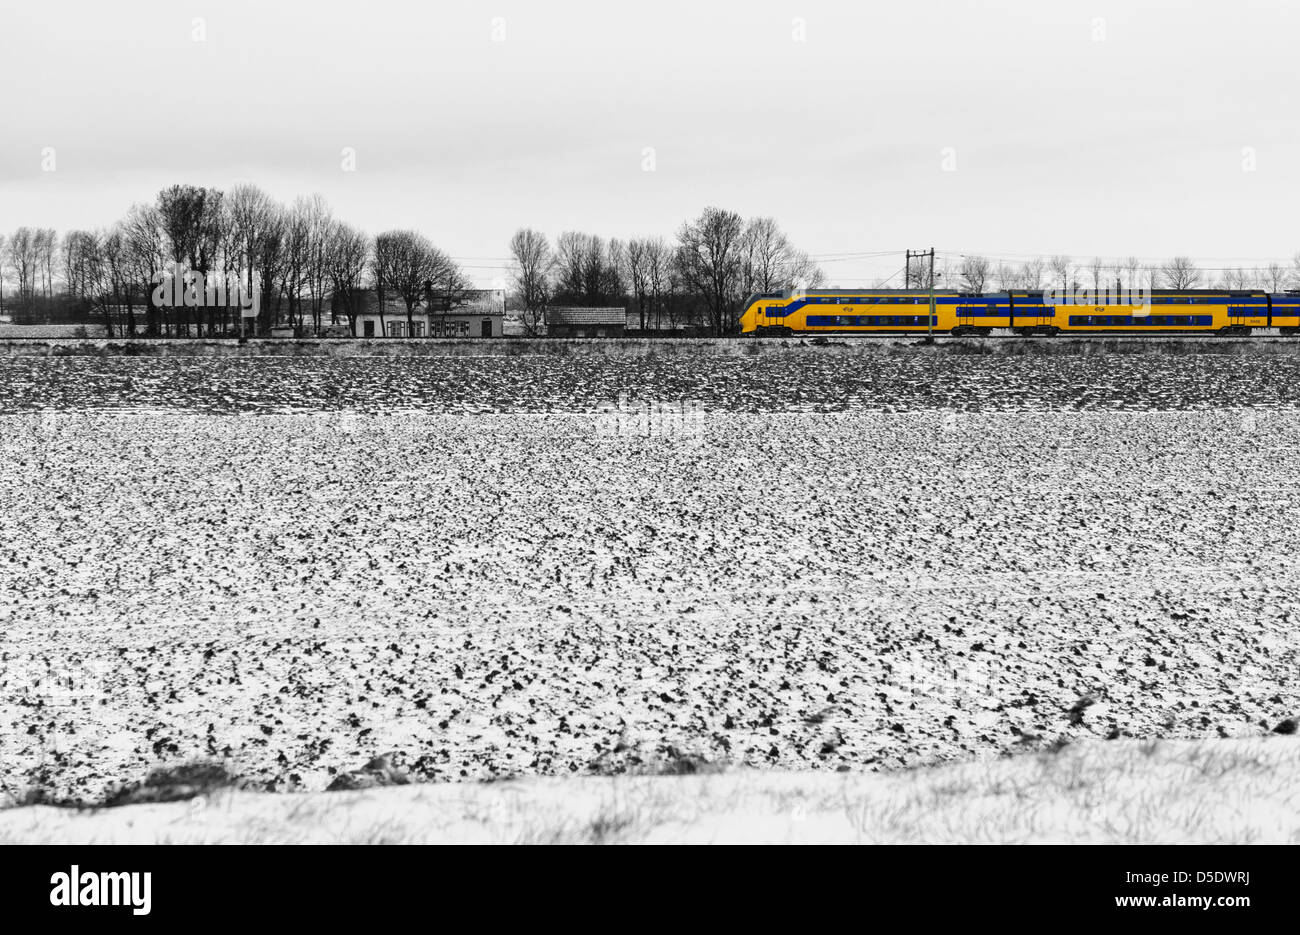 Passing yellow train of the Dutch Railways  in a snow covered landscape. Zeeland, Netherlands. B/W - Stock Image